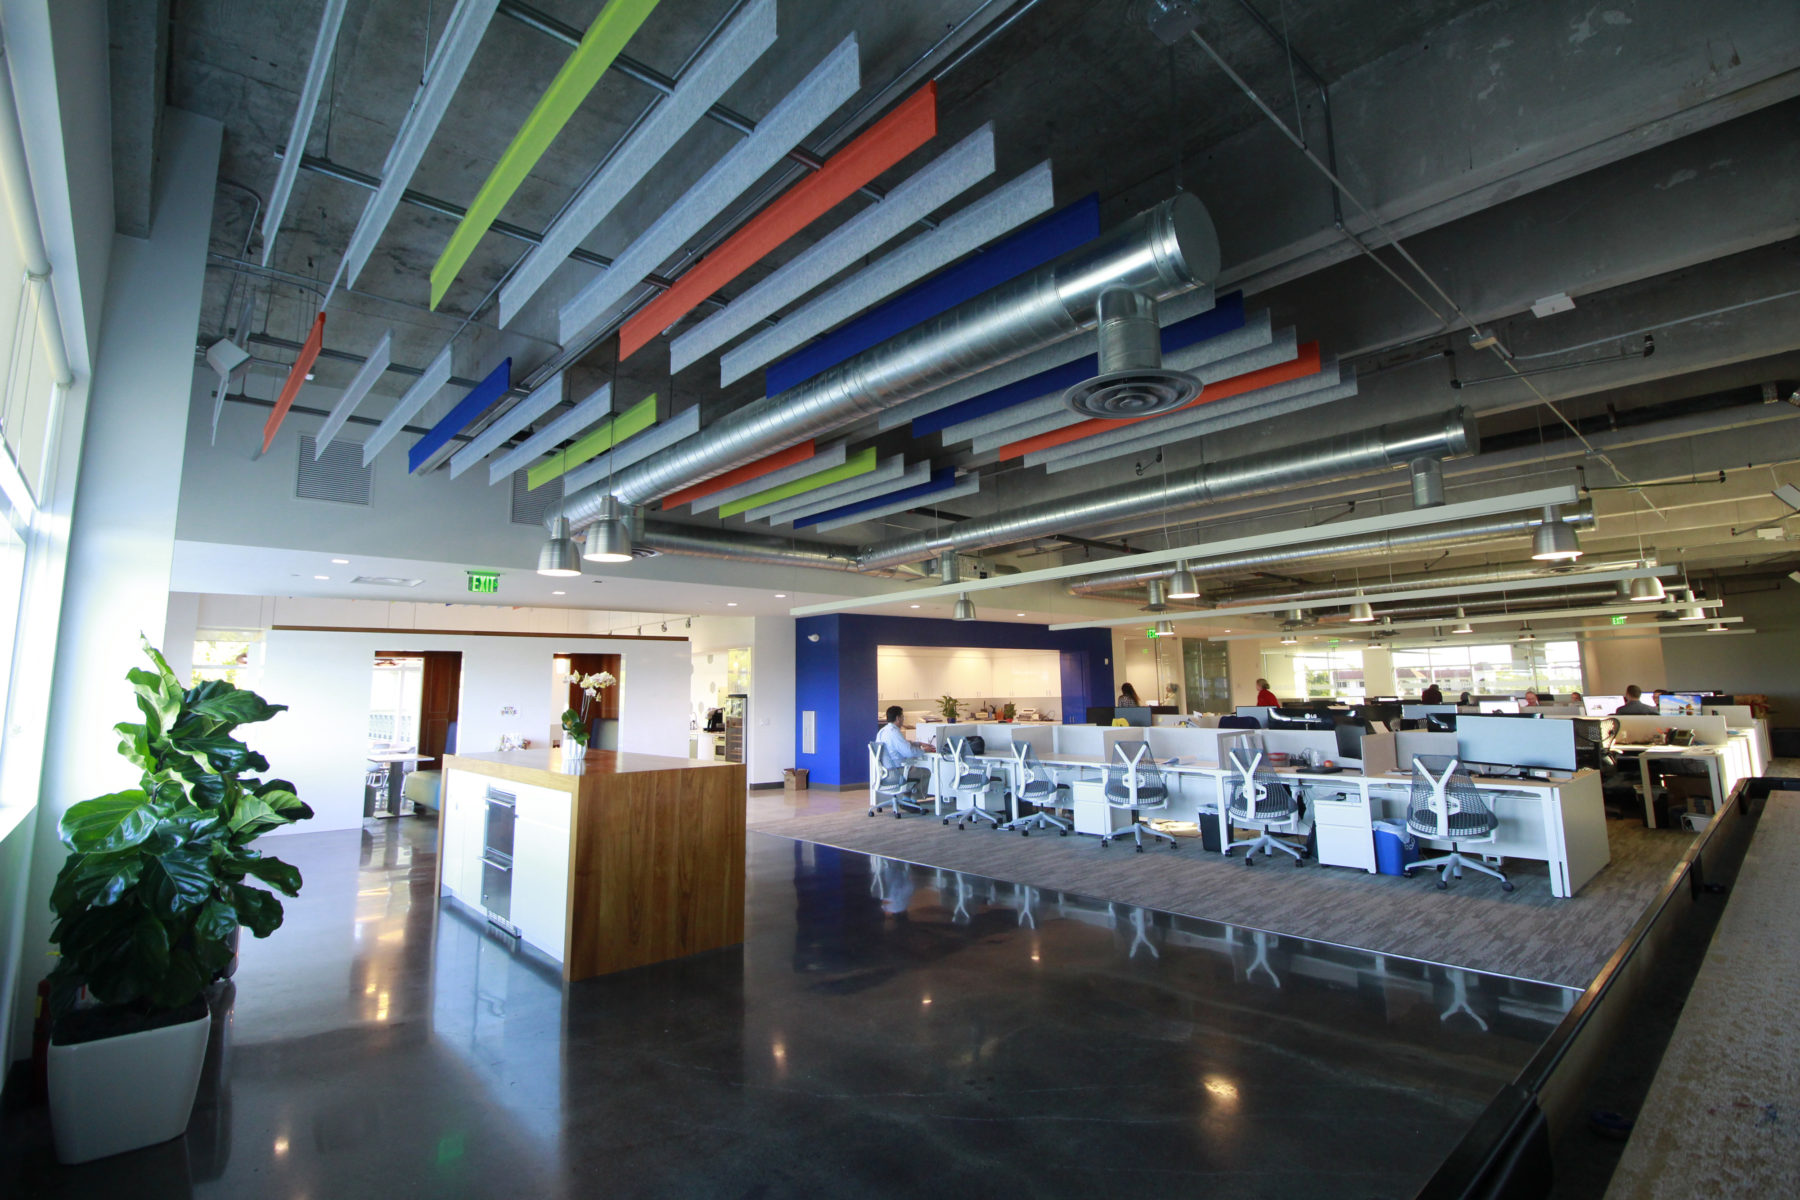 An open office with accented ceiling baffles over workstations.